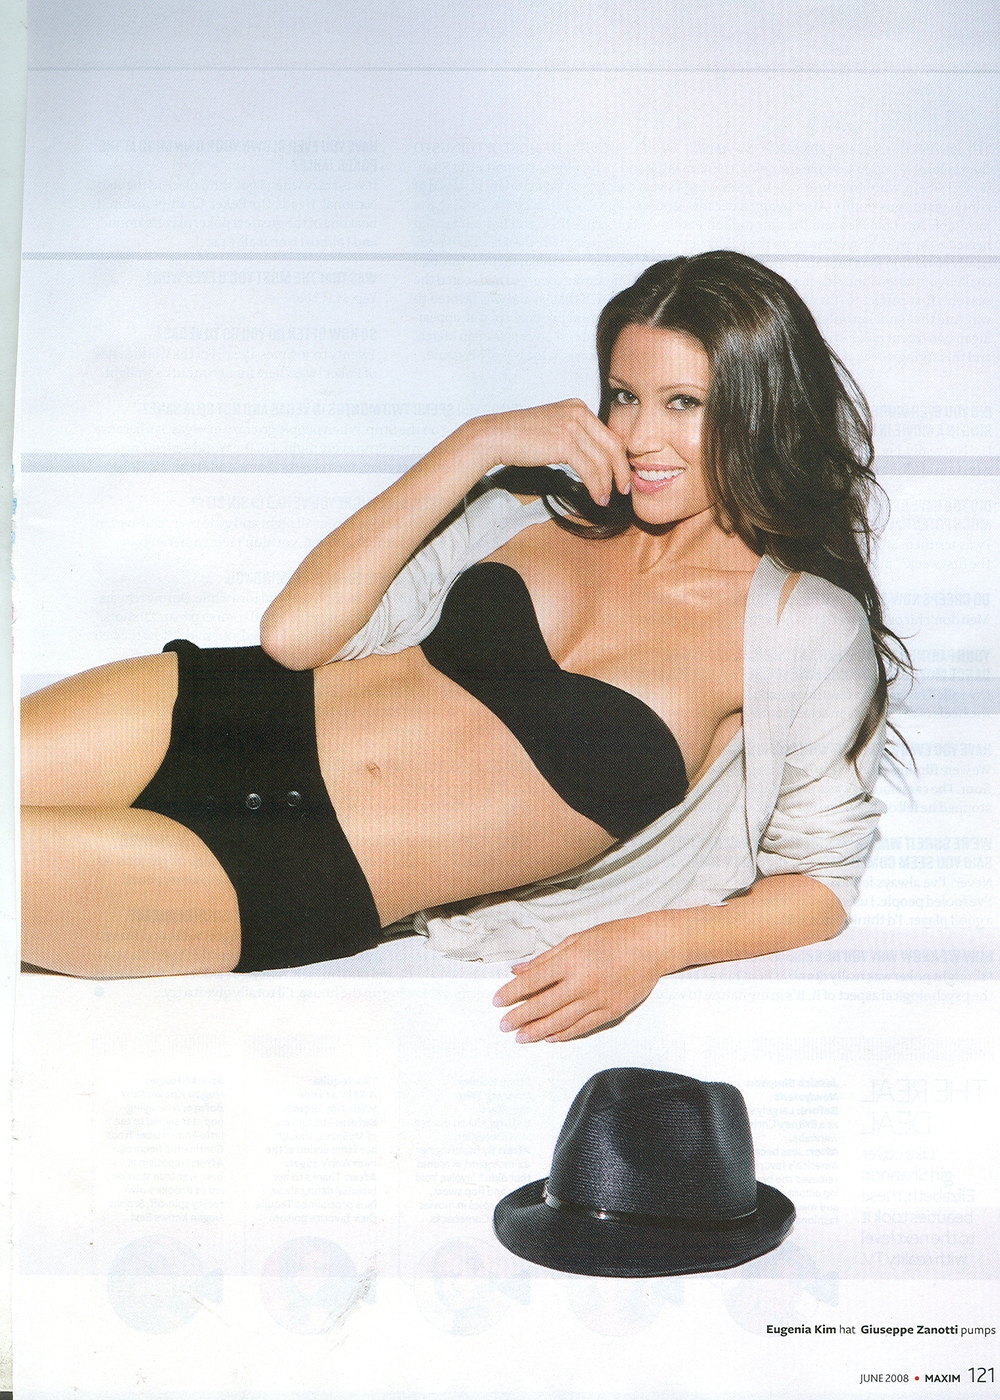 SE_Maxim Magazine_June 2008_3.jpg